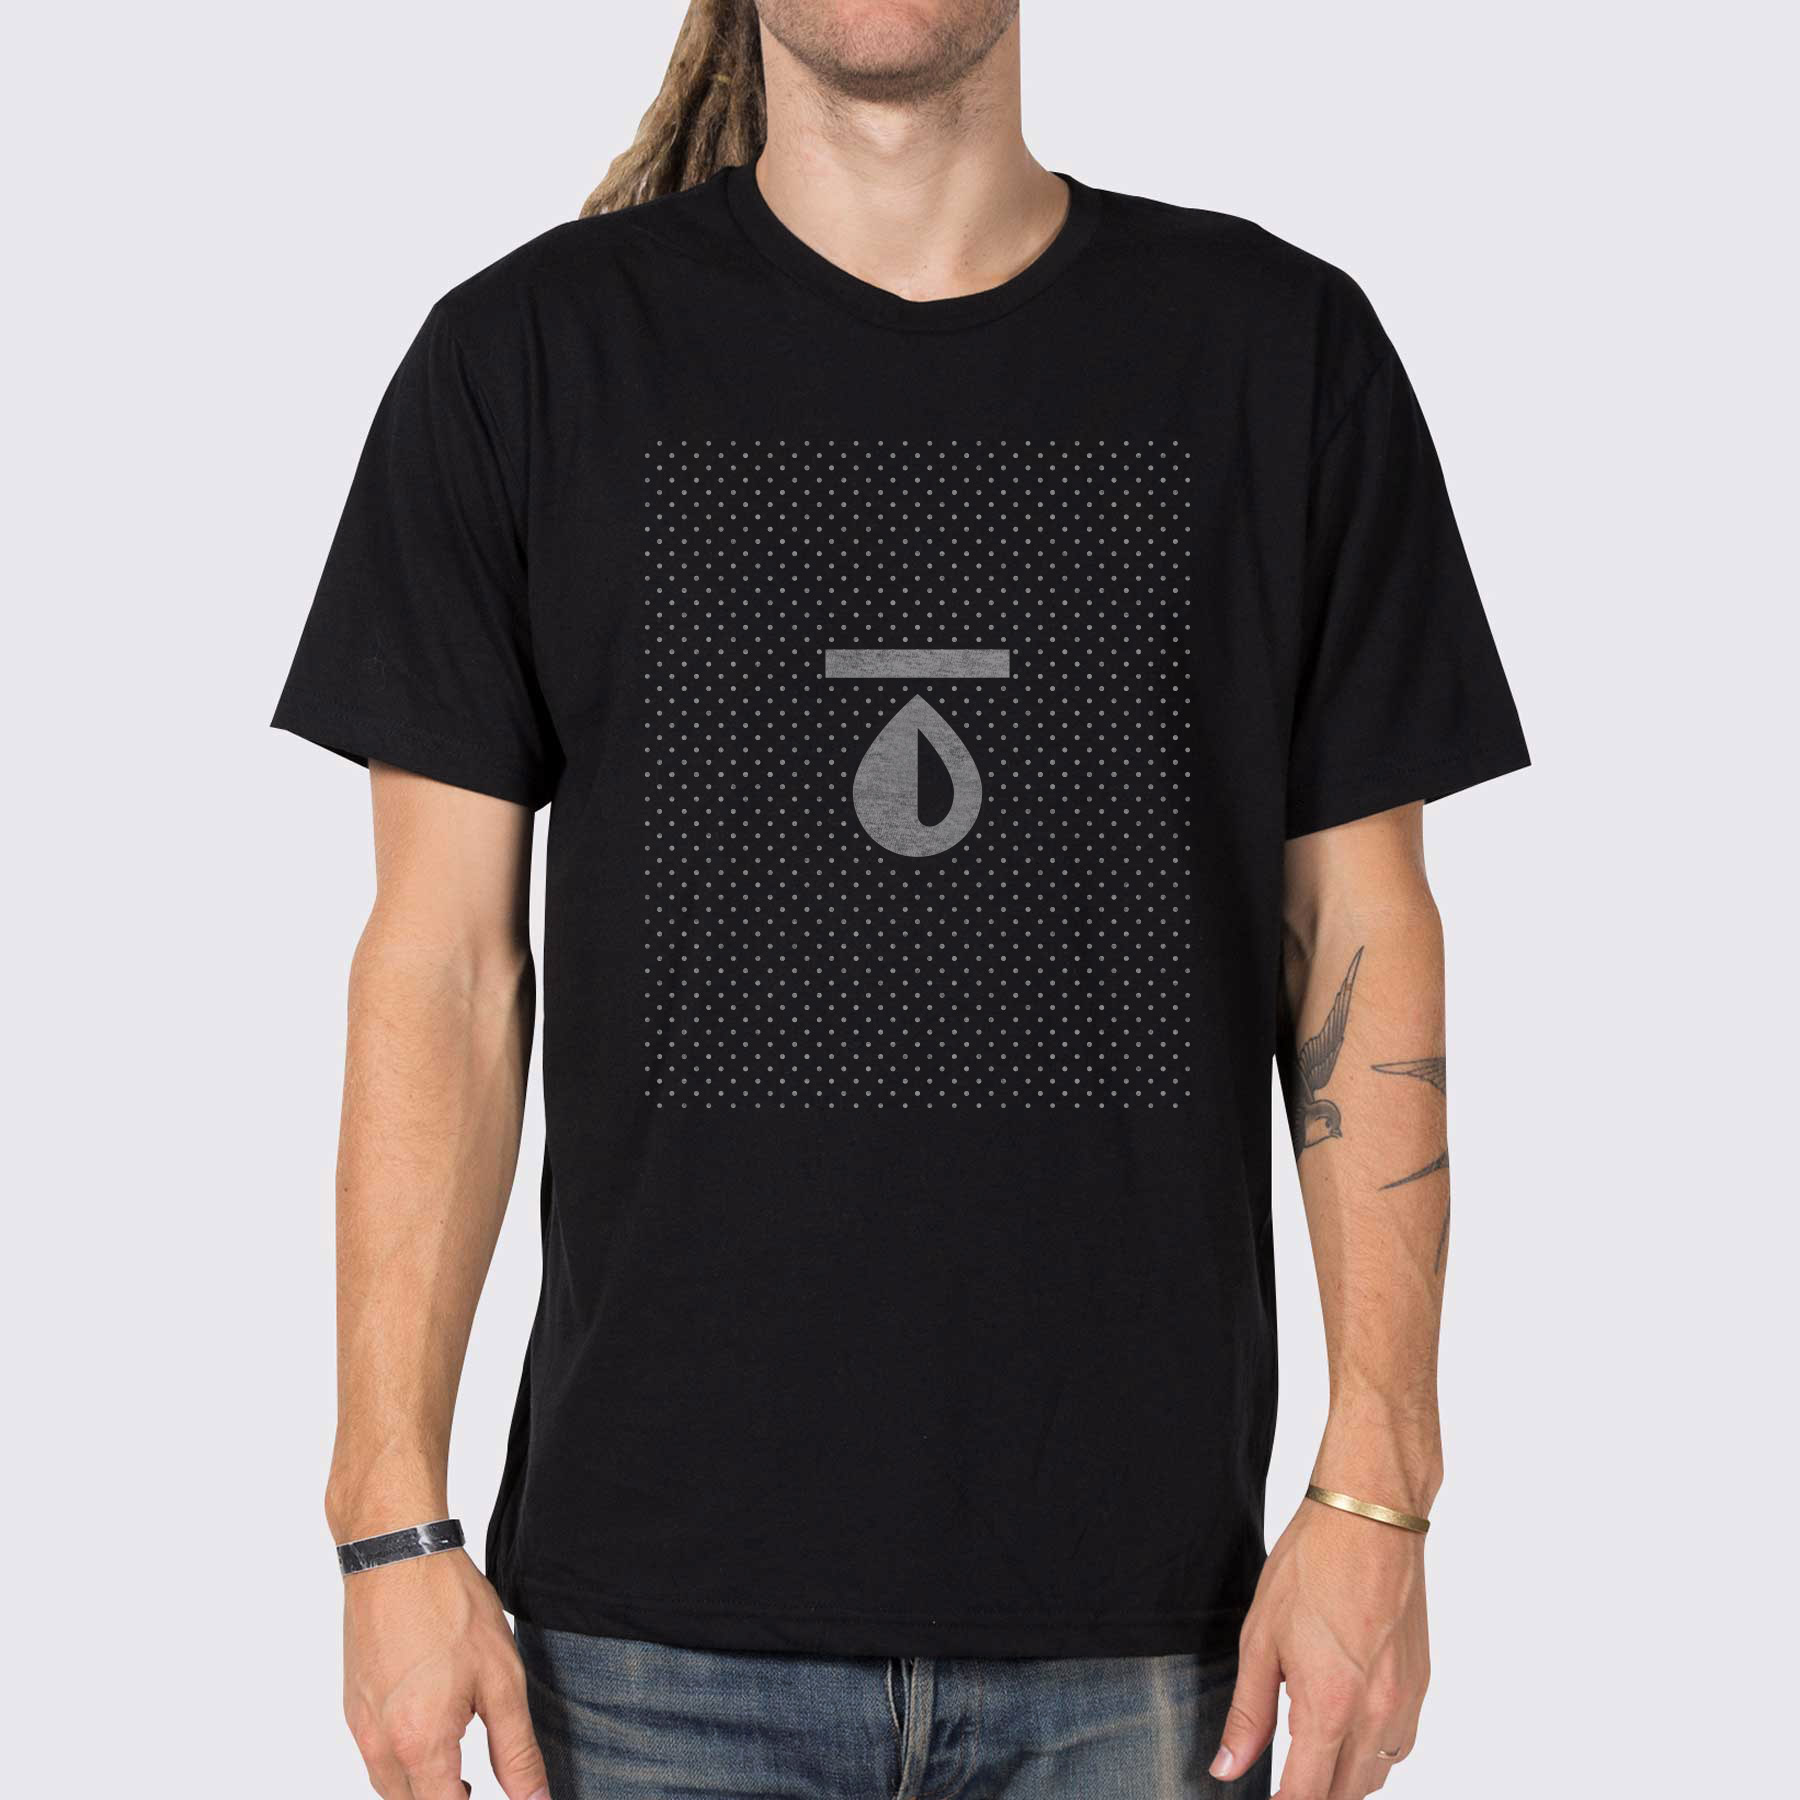 Black t shirt online design - Black T Shirt Online Design 36